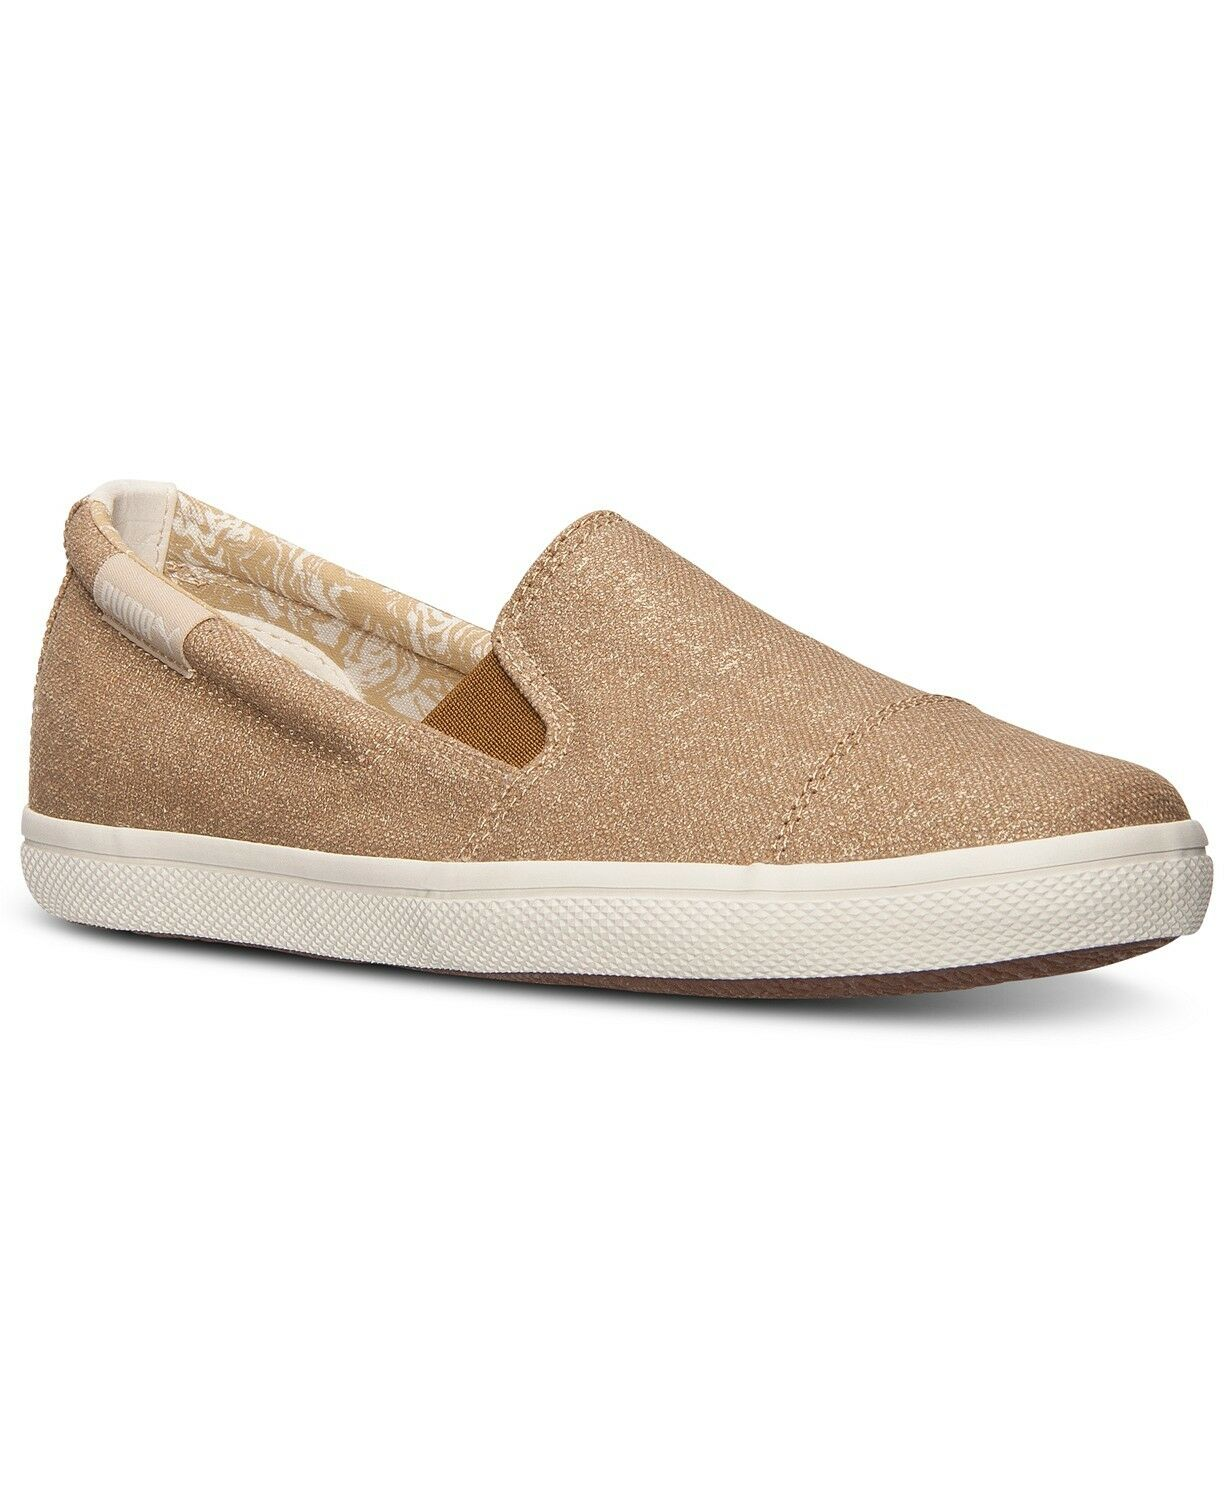 PUMA Women's PC Extreme Vulc Canvas Slip-On Casual Sneakers Shoes Sz 10 M